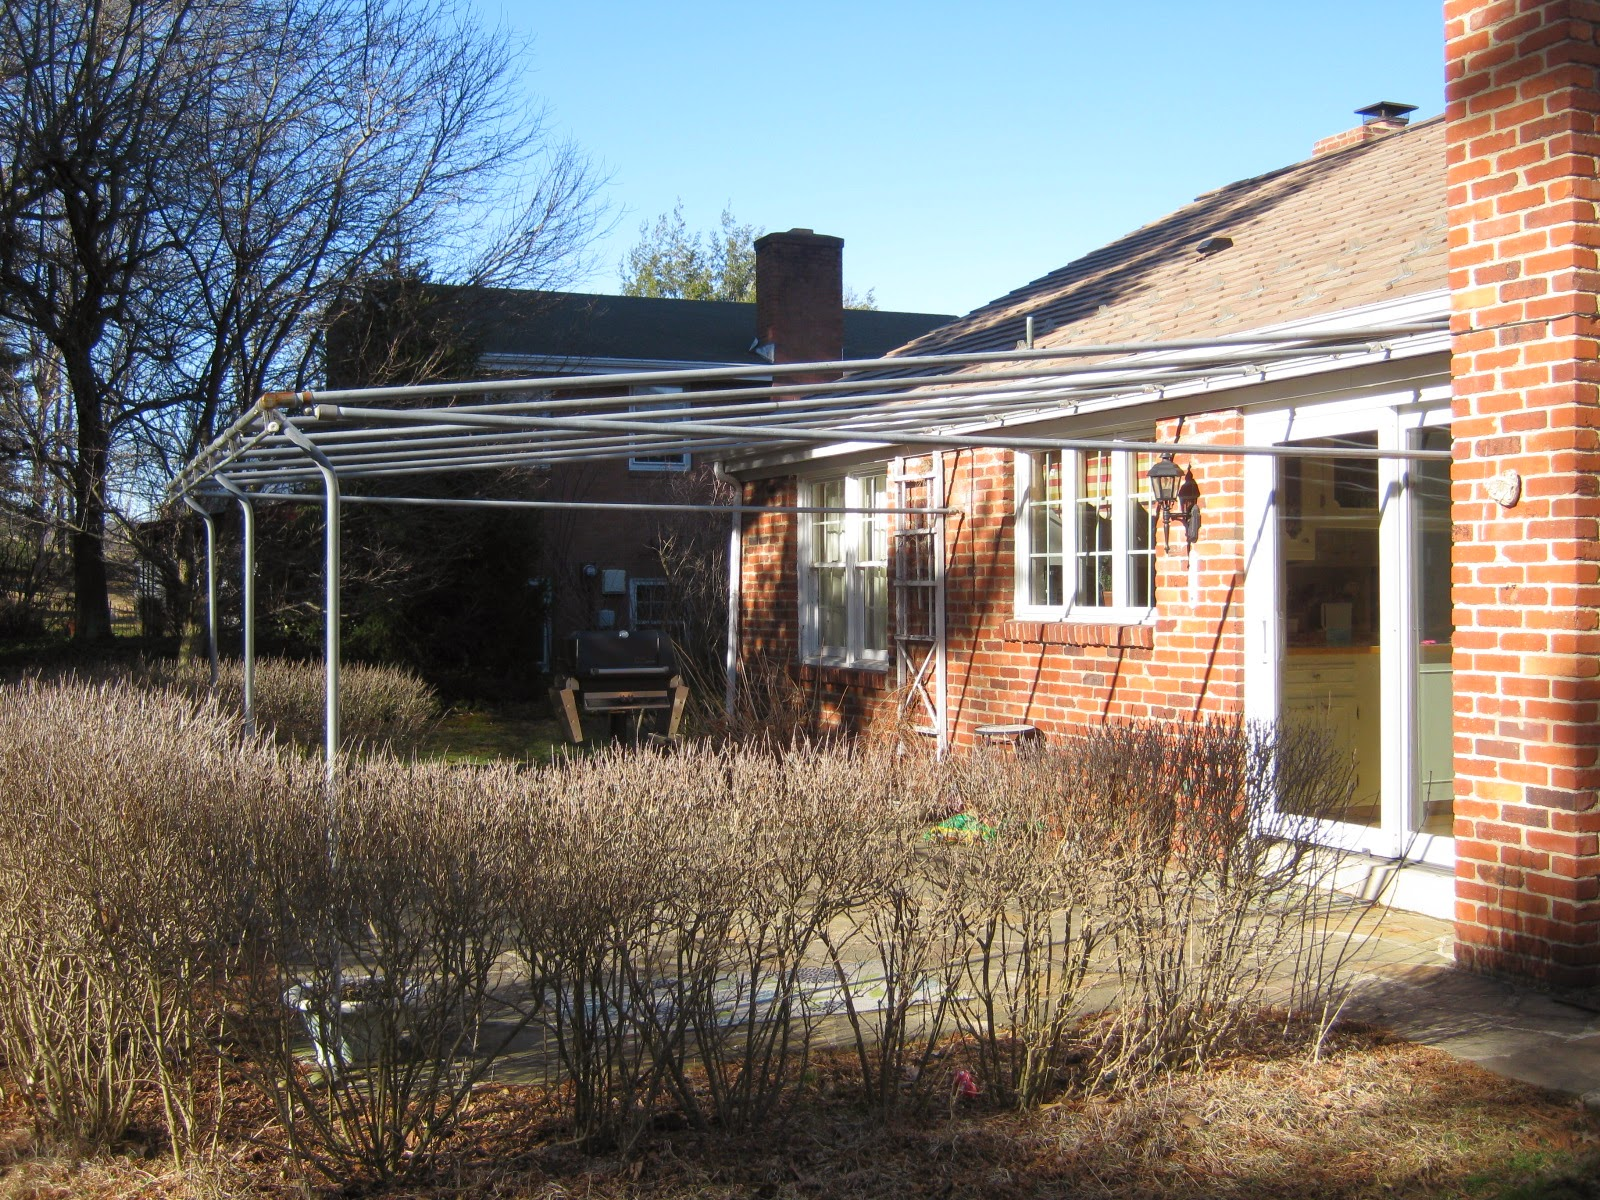 This End Up Removing An Aluminum Awning The Simple Fix